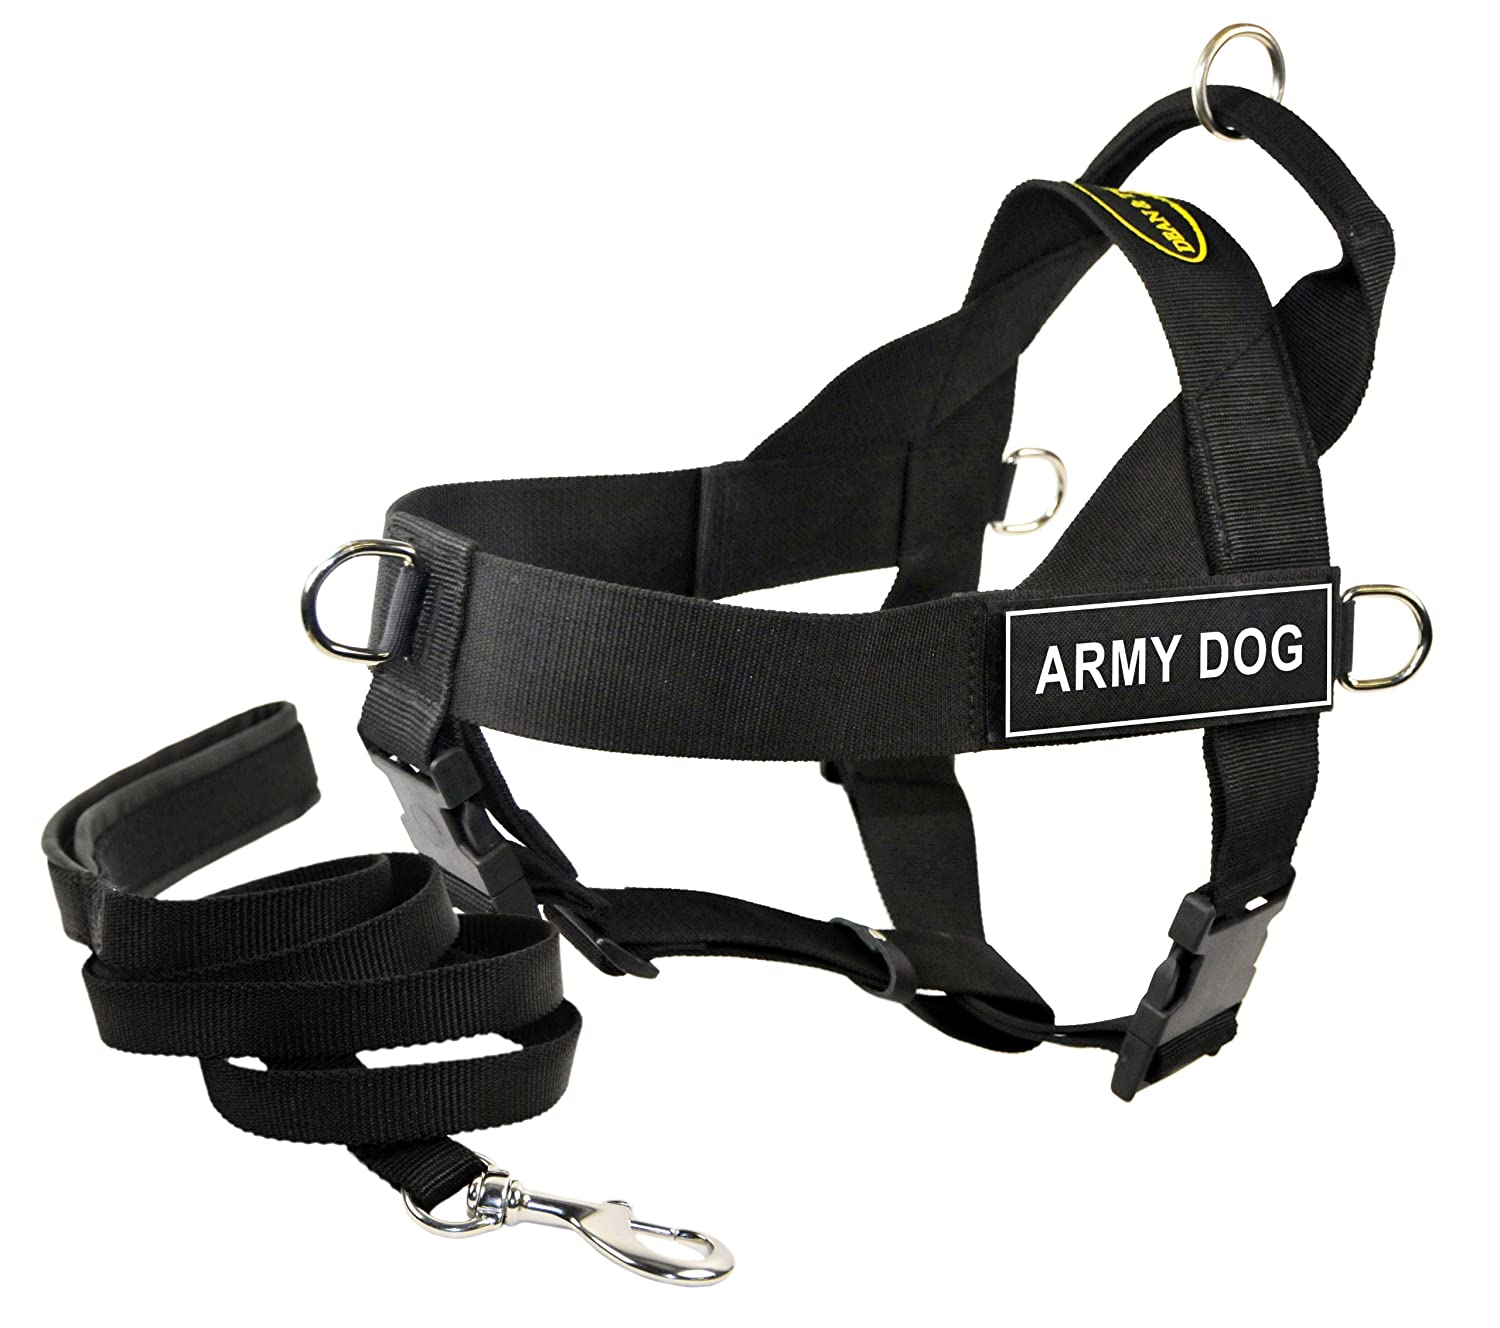 Dean & Tyler's DT Universal Army Dog  Harness, X-Small, with 6 ft Padded Puppy Leash.